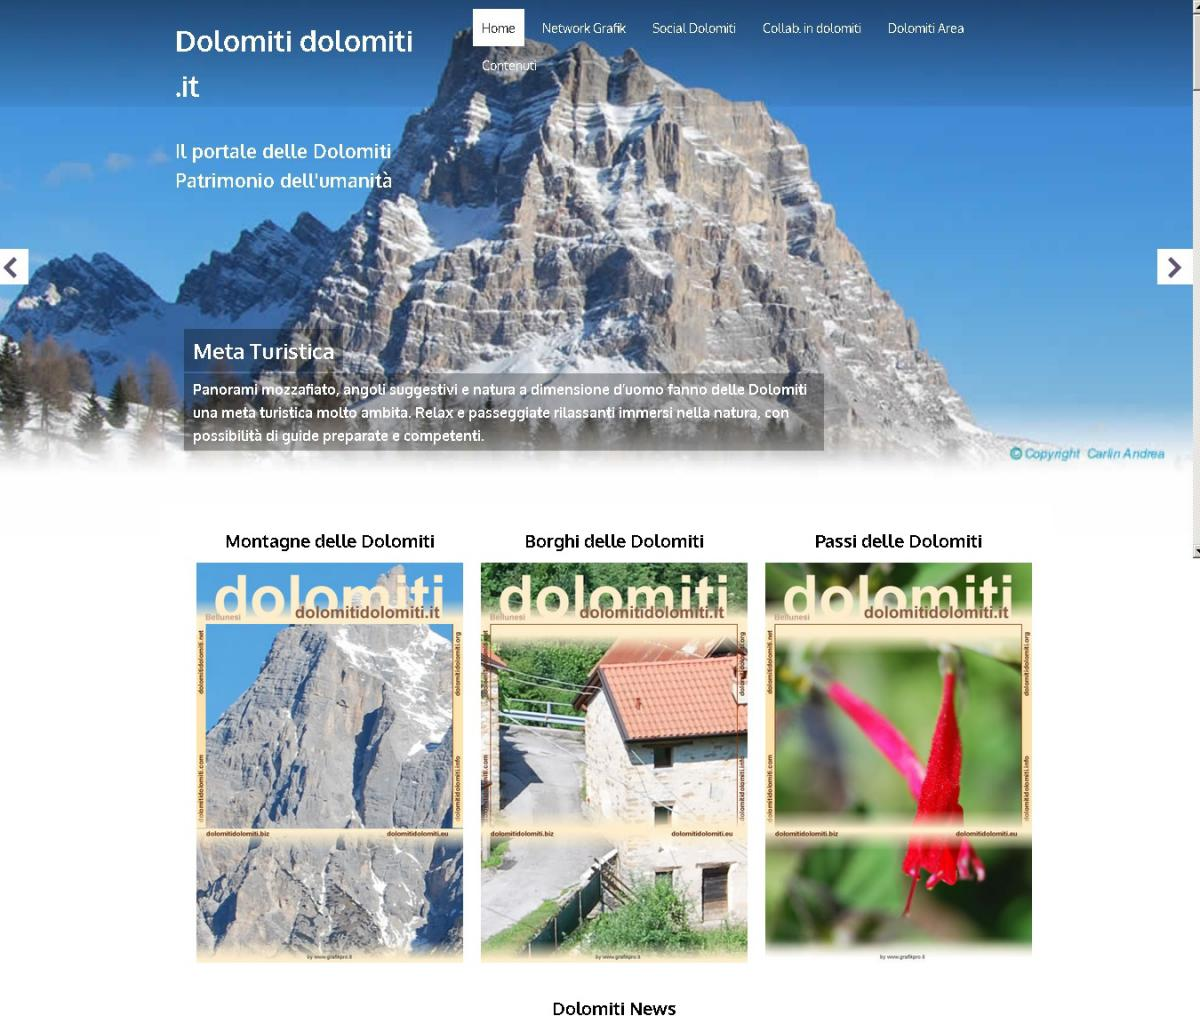 dolomitidolomiti.it